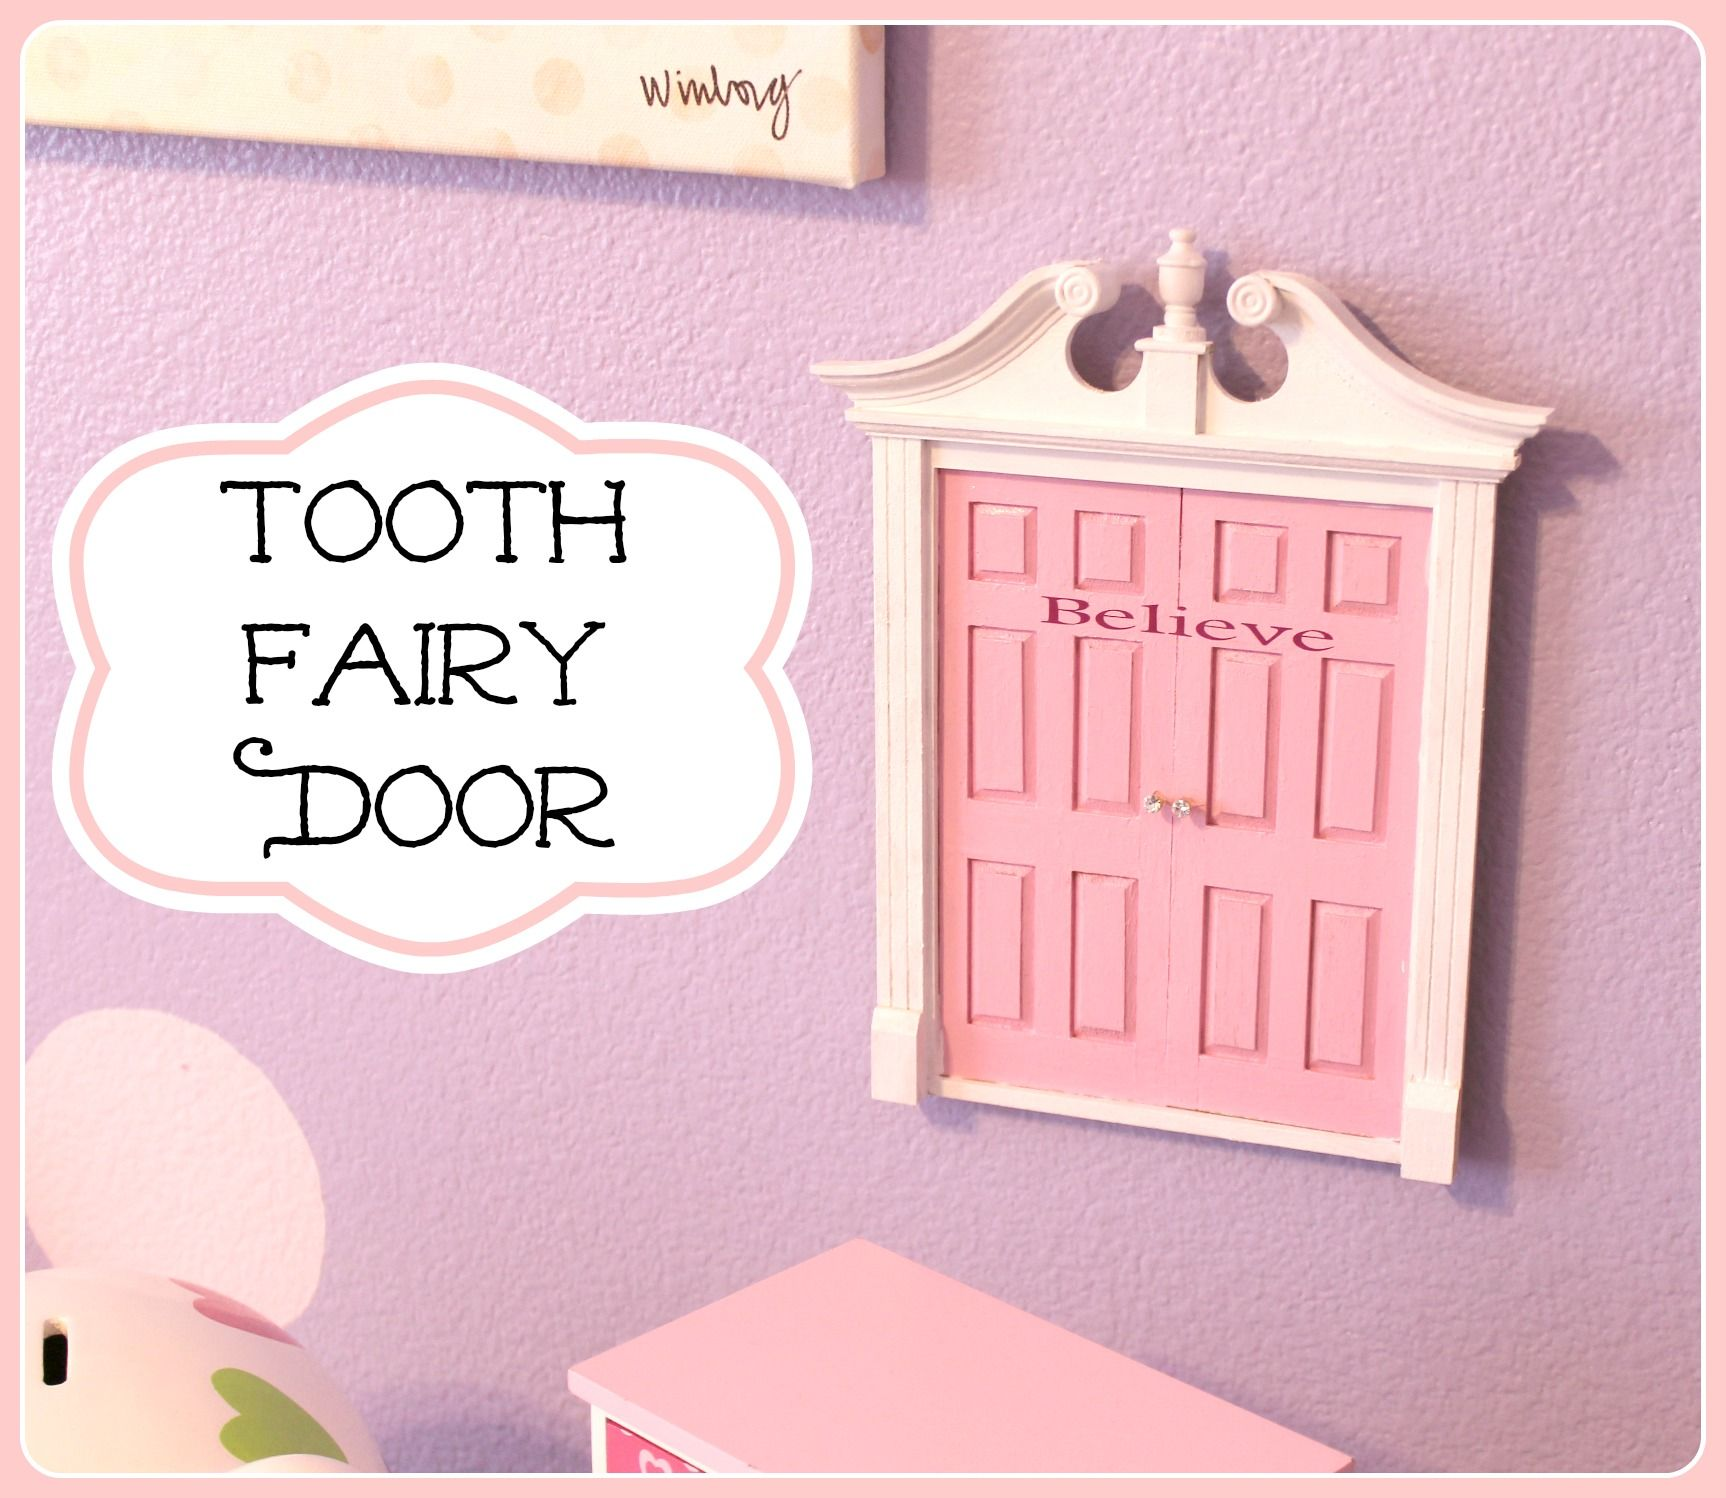 DIY Tooth Fairy Door. Did this right before St. Pattyu0027s Day for the little  sc 1 st  Pinterest & DIY Tooth Fairy Door. Did this right before St. Pattyu0027s Day for ... pezcame.com